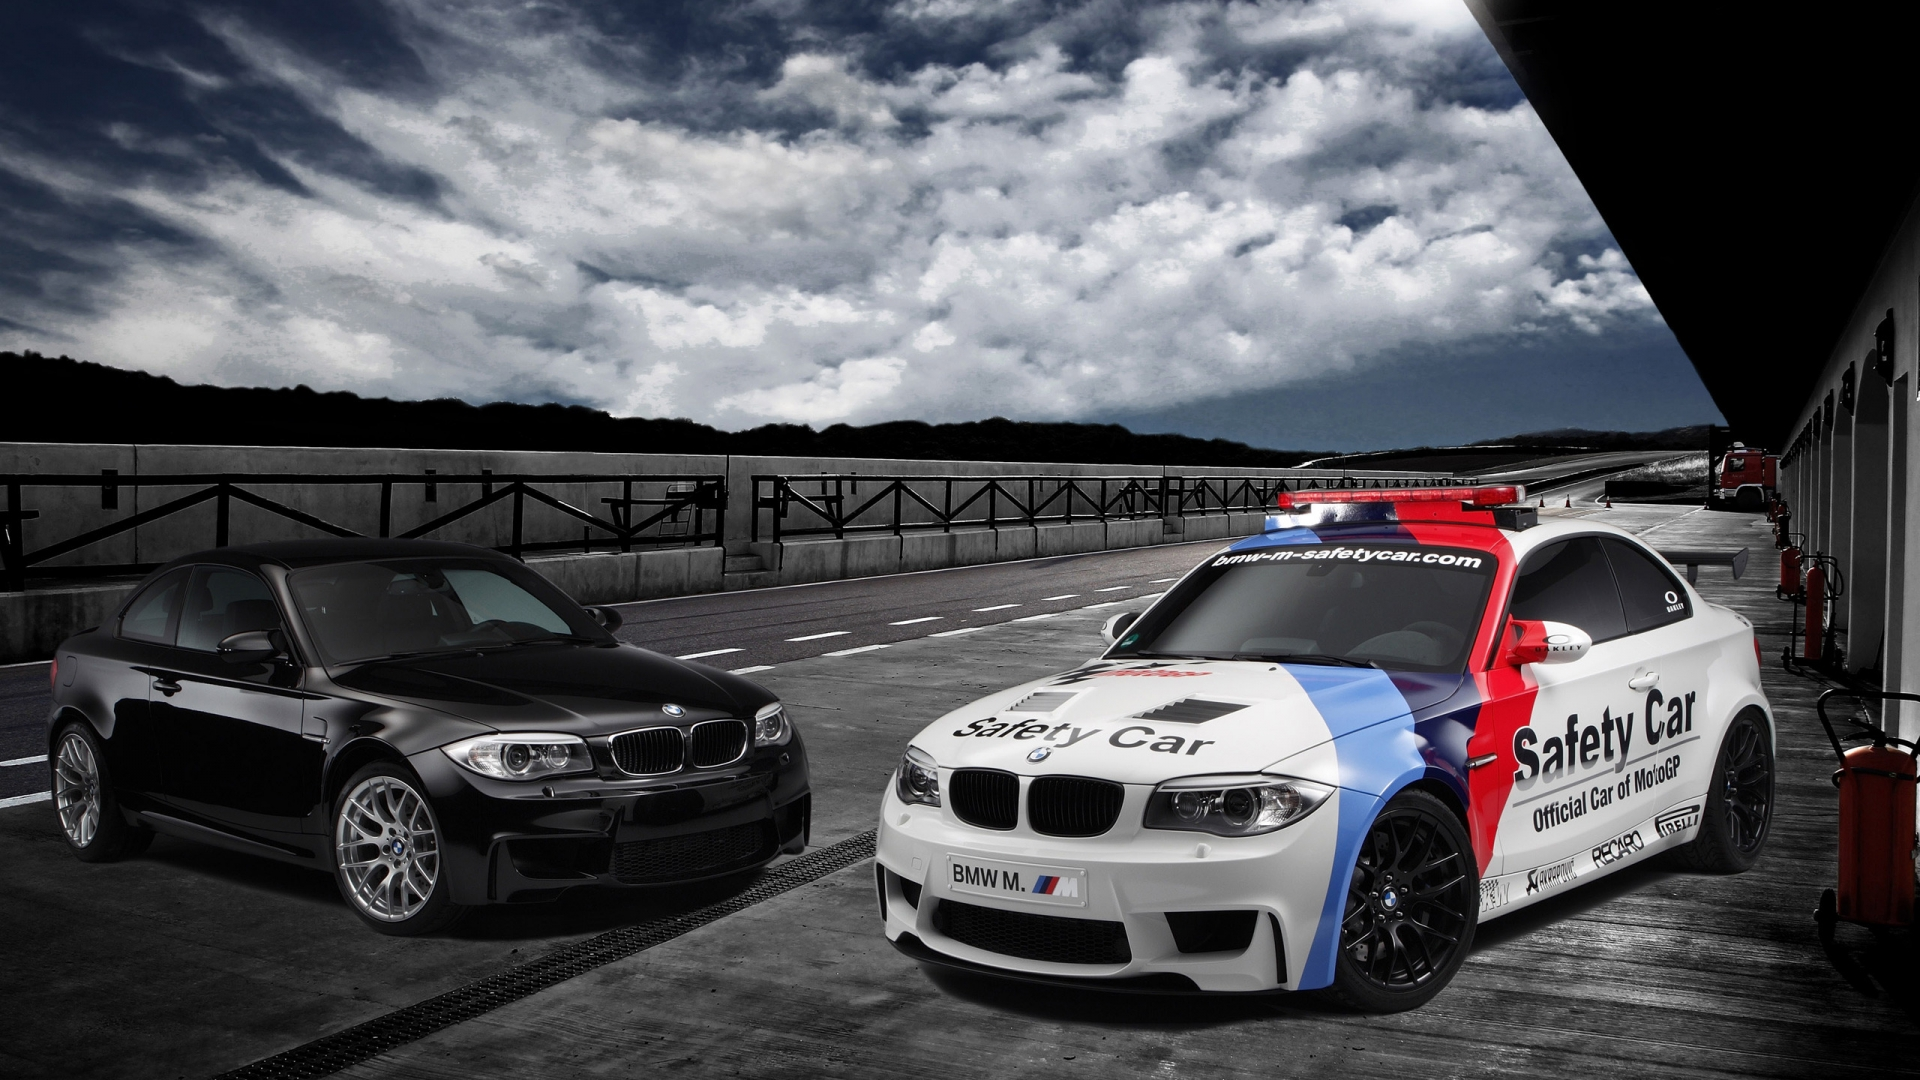 BMW 1 Series M Coupe Safety Car 1920 x 1080 HDTV 1080p ...